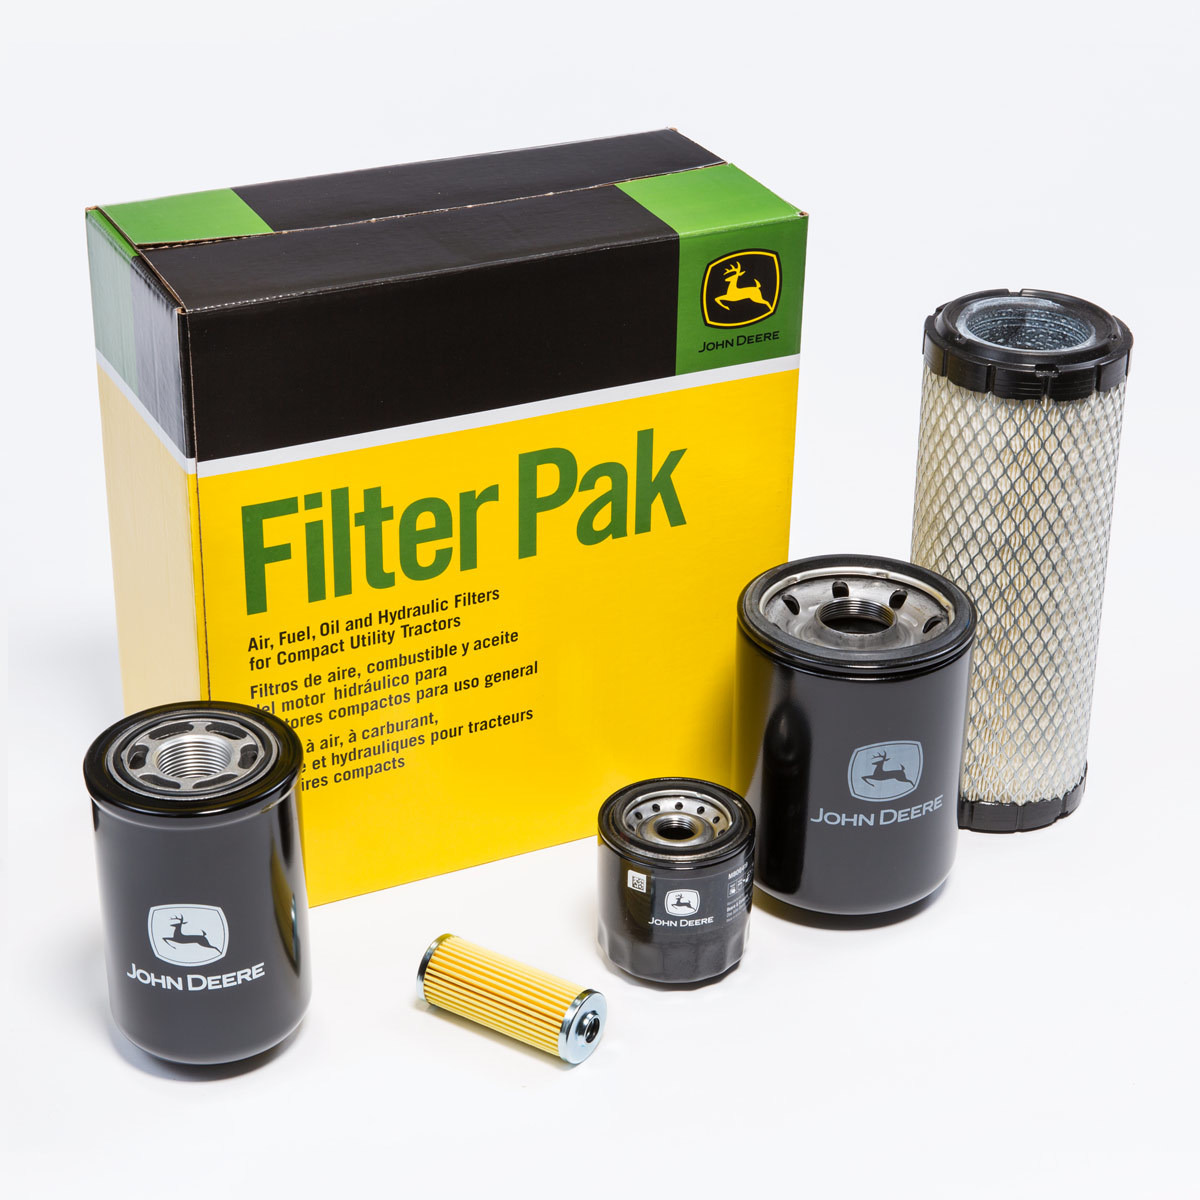 Filter Pak, 4210, 4310 and 4410 Tractors Compact Tractors